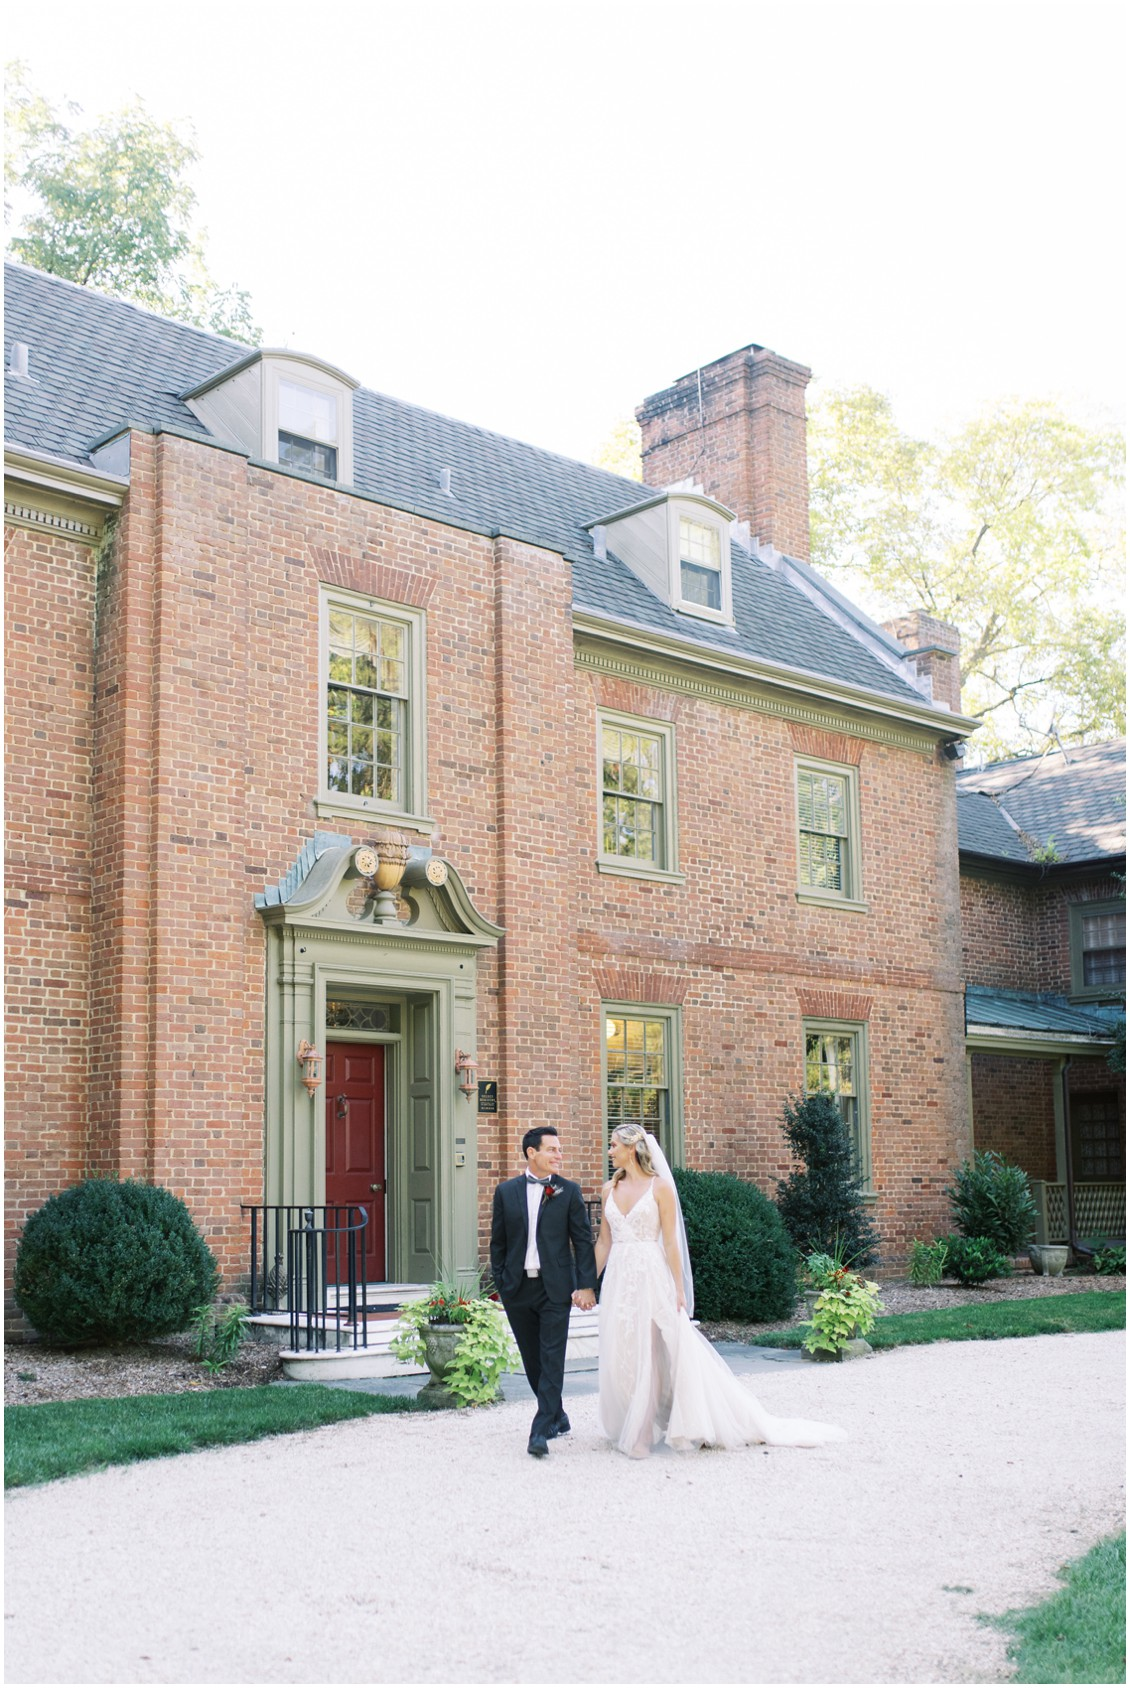 Bride and groom in front of grand and gorgeous manor house | My Eastern Shore Wedding | Hannah Belle Events | Eastern Shore Tents and Events